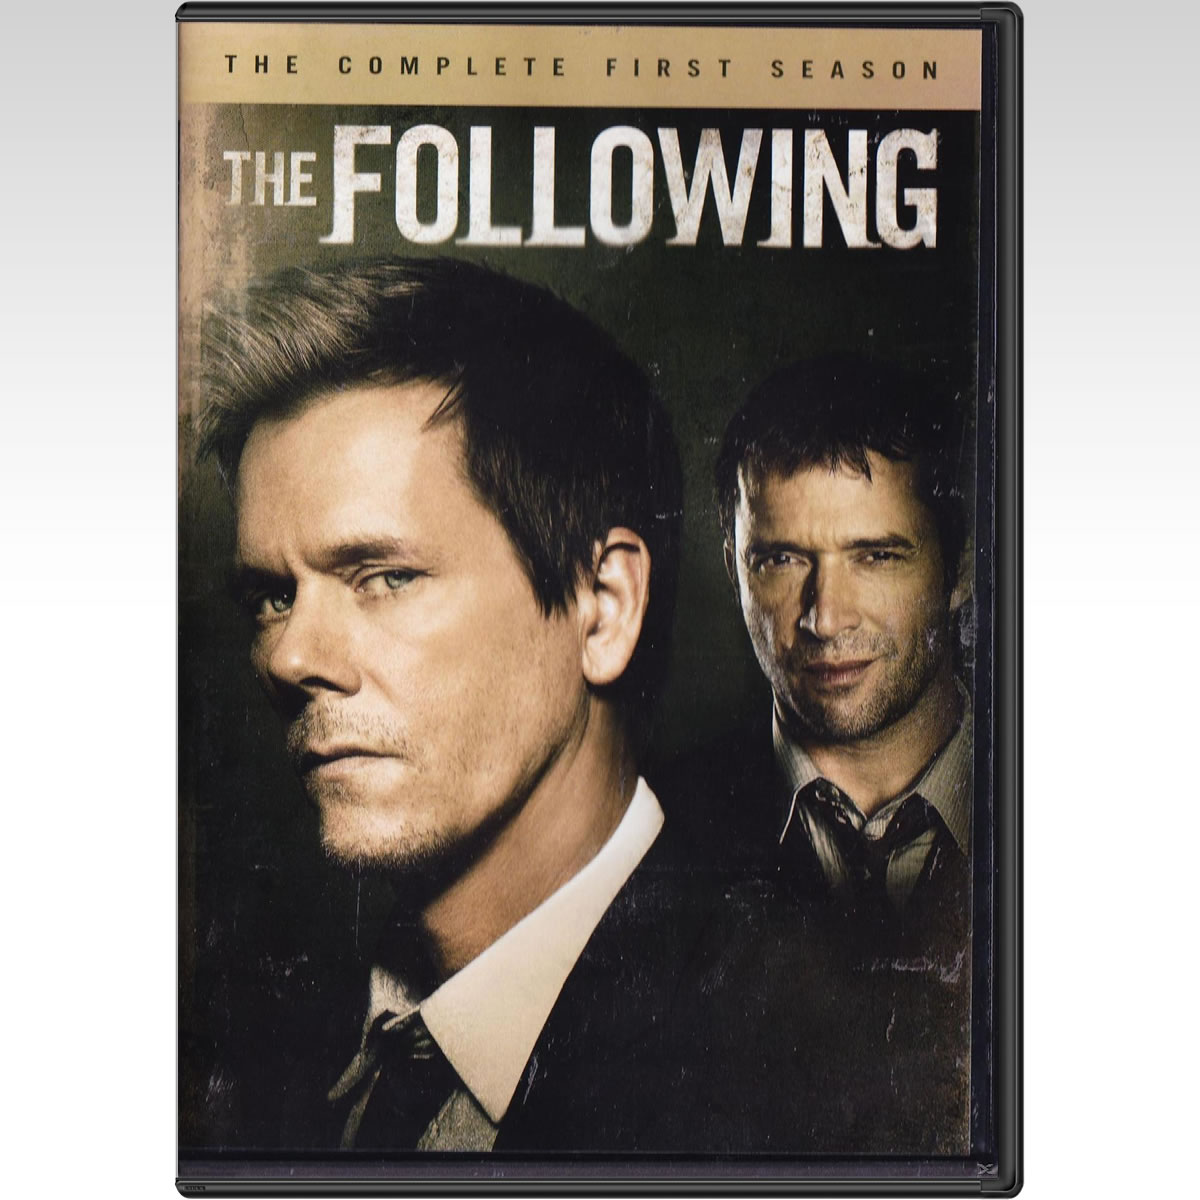 THE FOLLOWING: THE COMPLETE 1st SEASON - THE FOLLOWING: 1� �������� (4 DVDs)